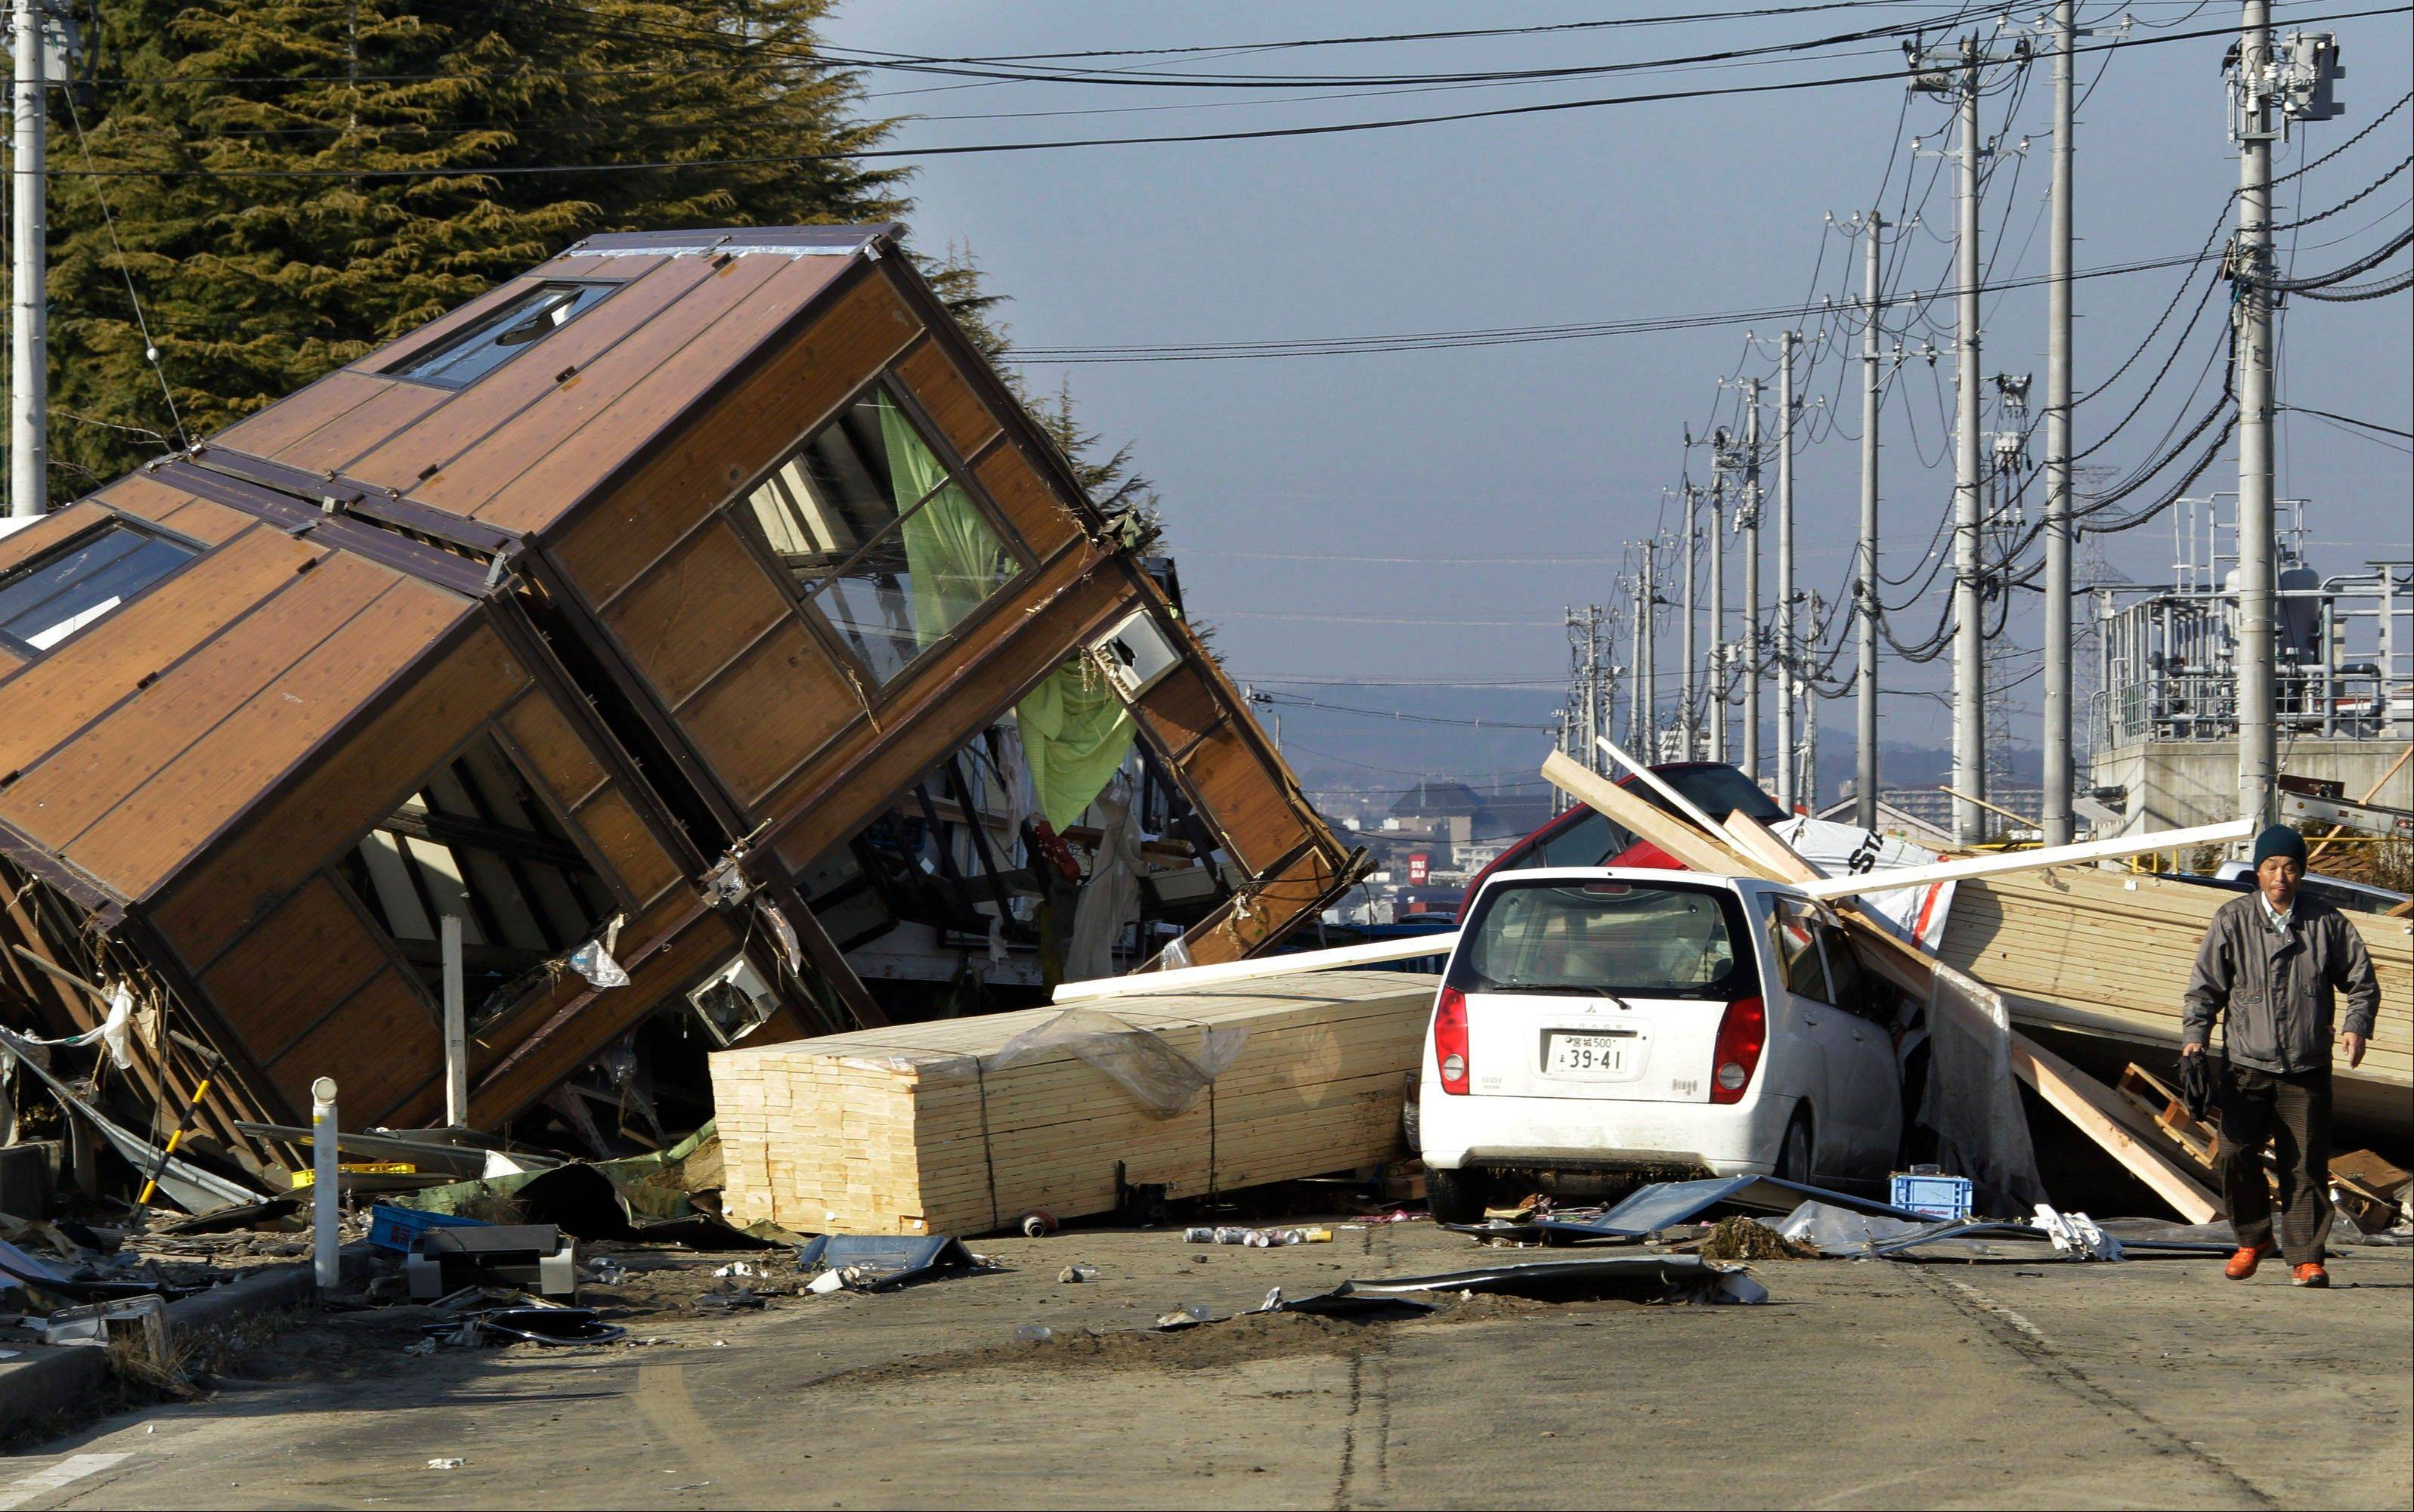 A man walks by a collapsed house and debris in Sendai, northeastern Japan, afterthe devastating 2011 earthquake in Japan. New research appearing Thursday suggests such powerful distant quakes can trigger minor shaking around wastewater injection sites in the U.S. Midwest.